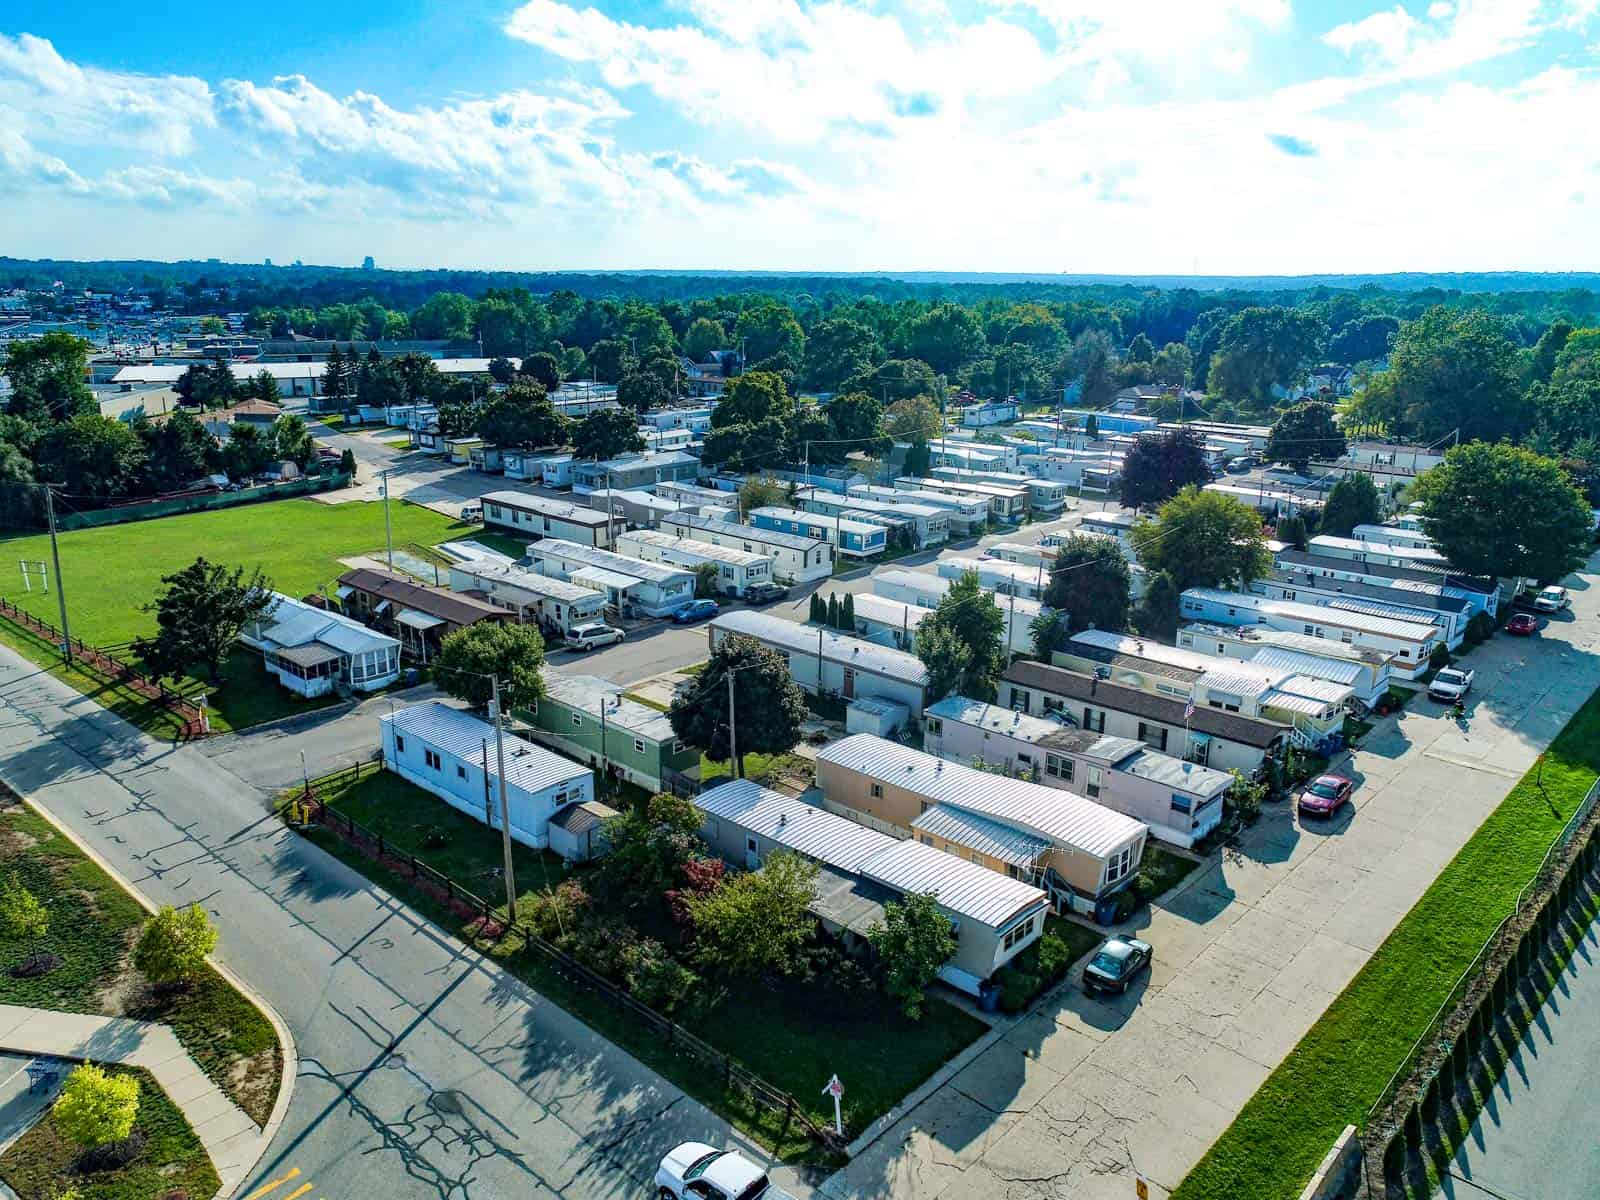 low altitude drone photo of residential trailer home park in Grand Rapids, MI